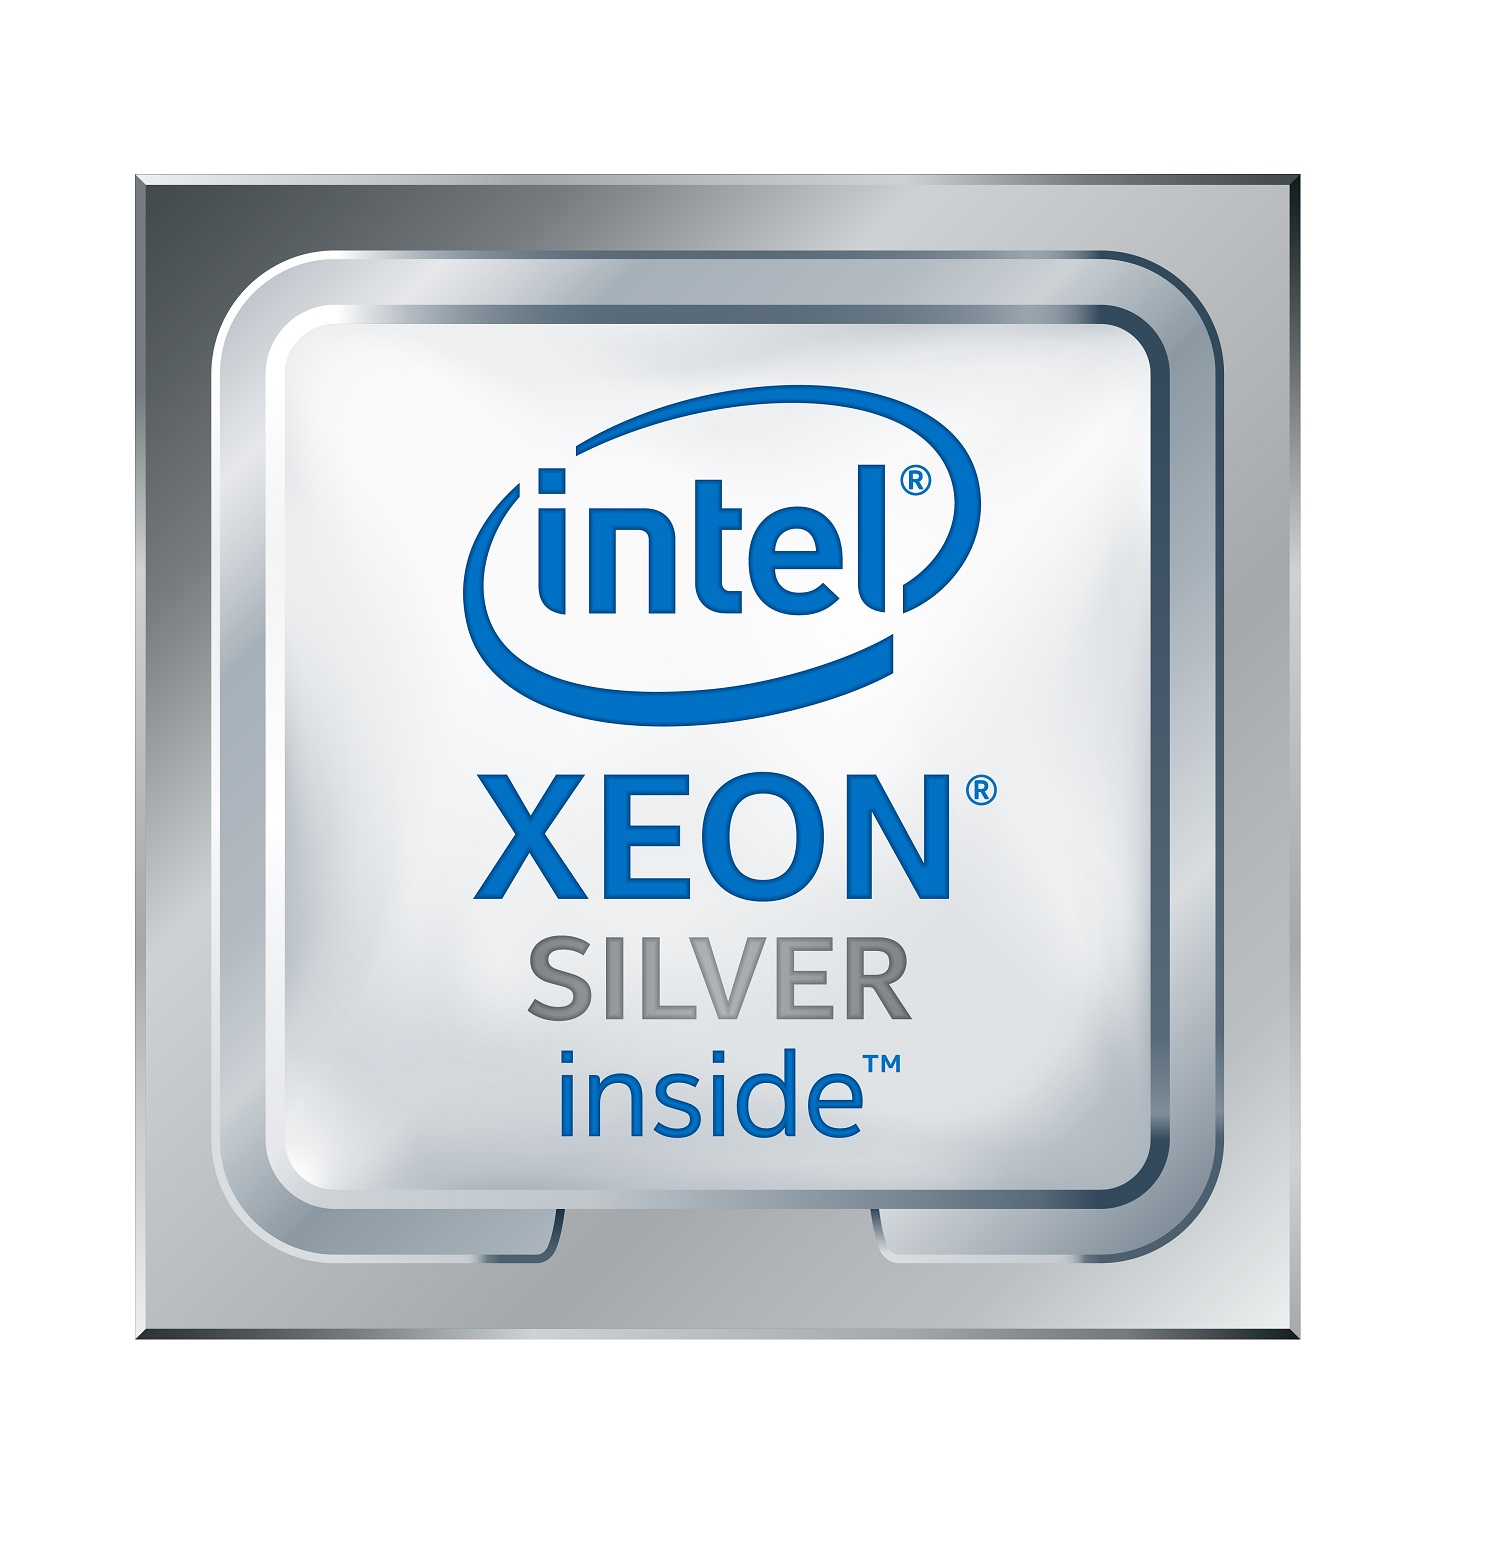 Lenovo Xeon Silver Dodeca-core 4116 2.10GHz Server Processor